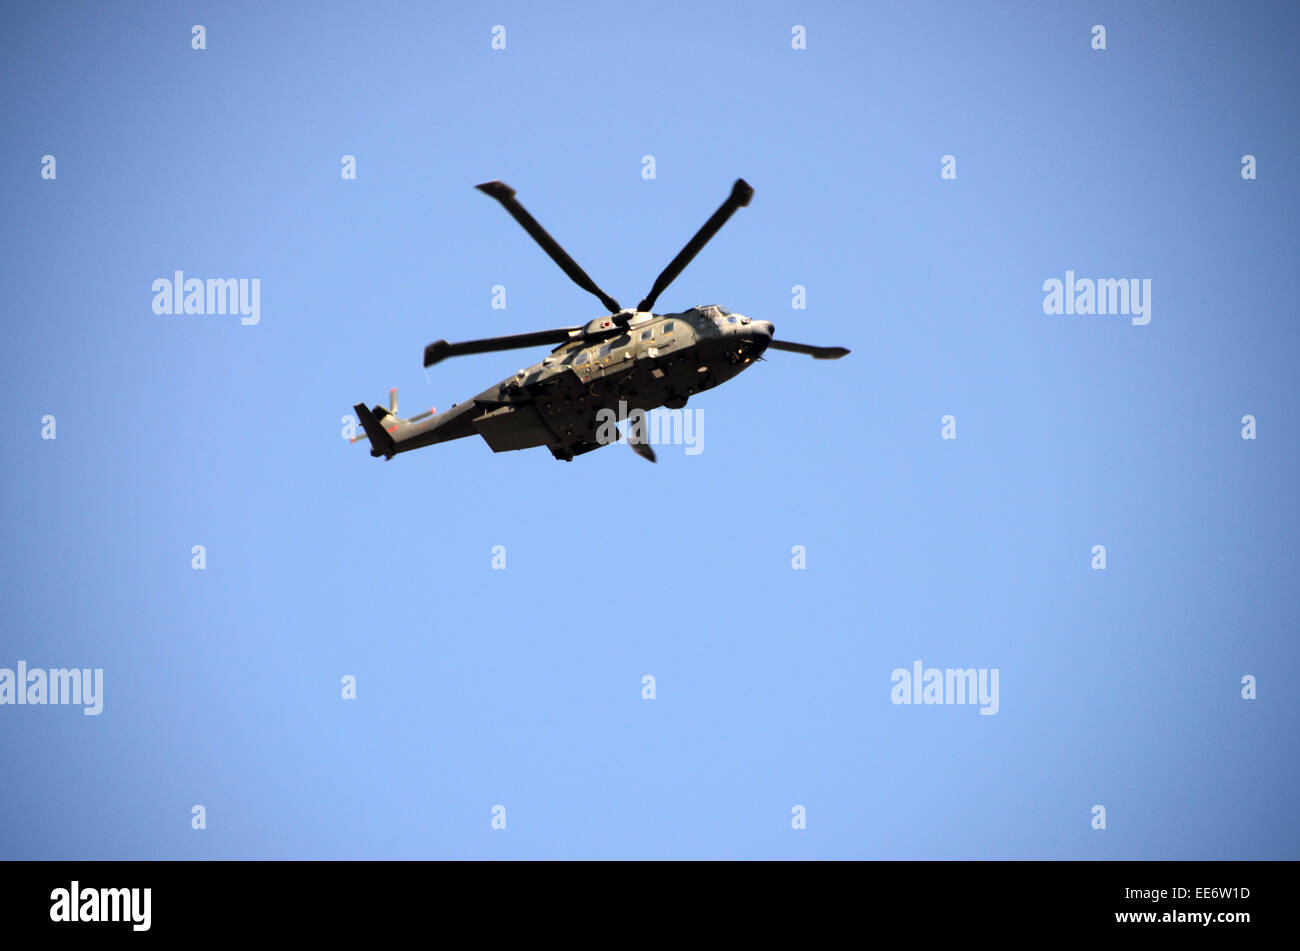 m-17 british army russian made helicopter - Stock Image